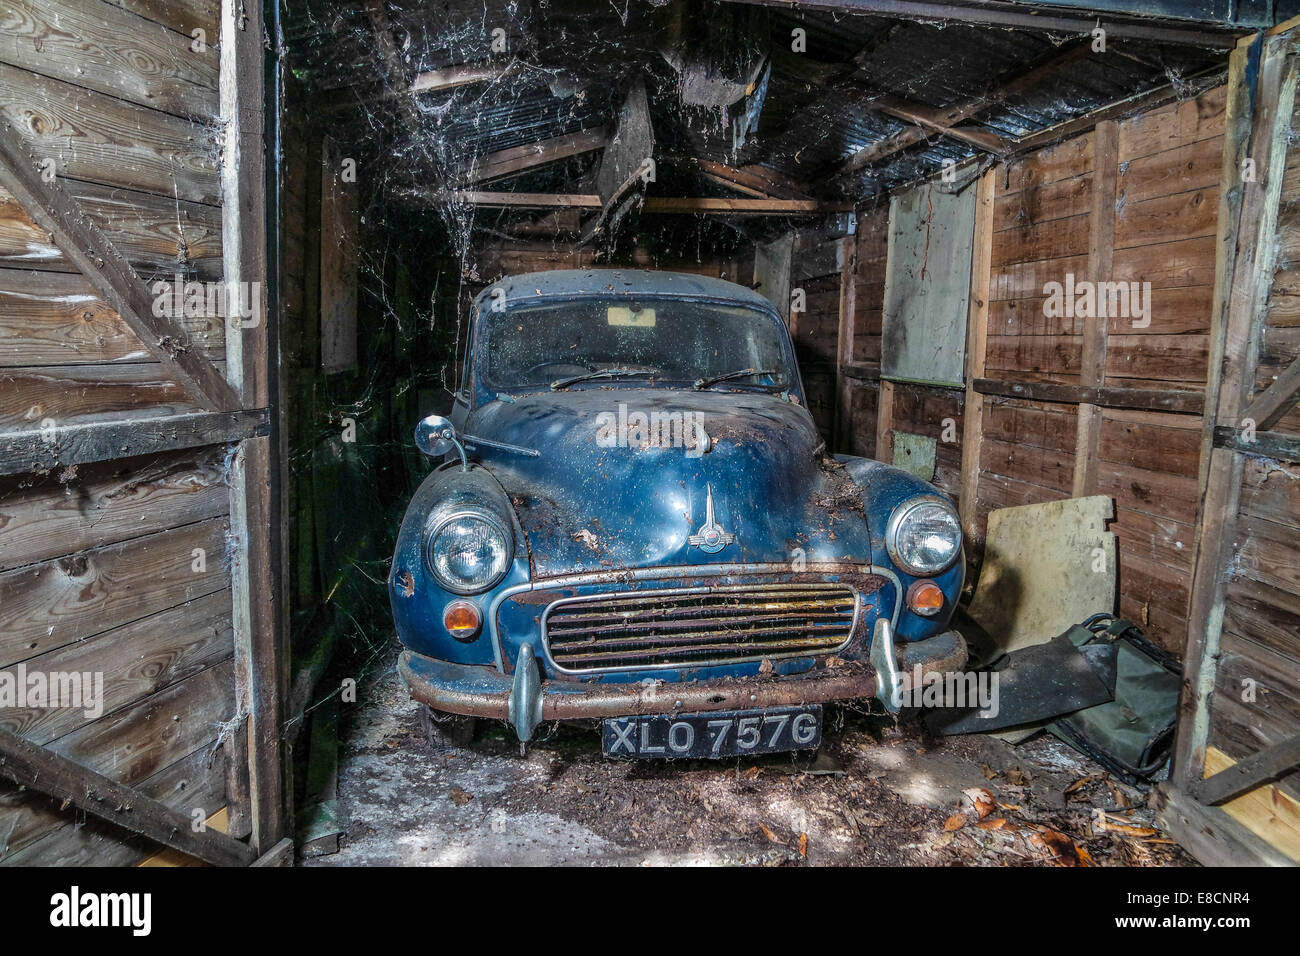 A old Morris Minor stored in a shed covered in cobwebs and spider webs. - Stock Image